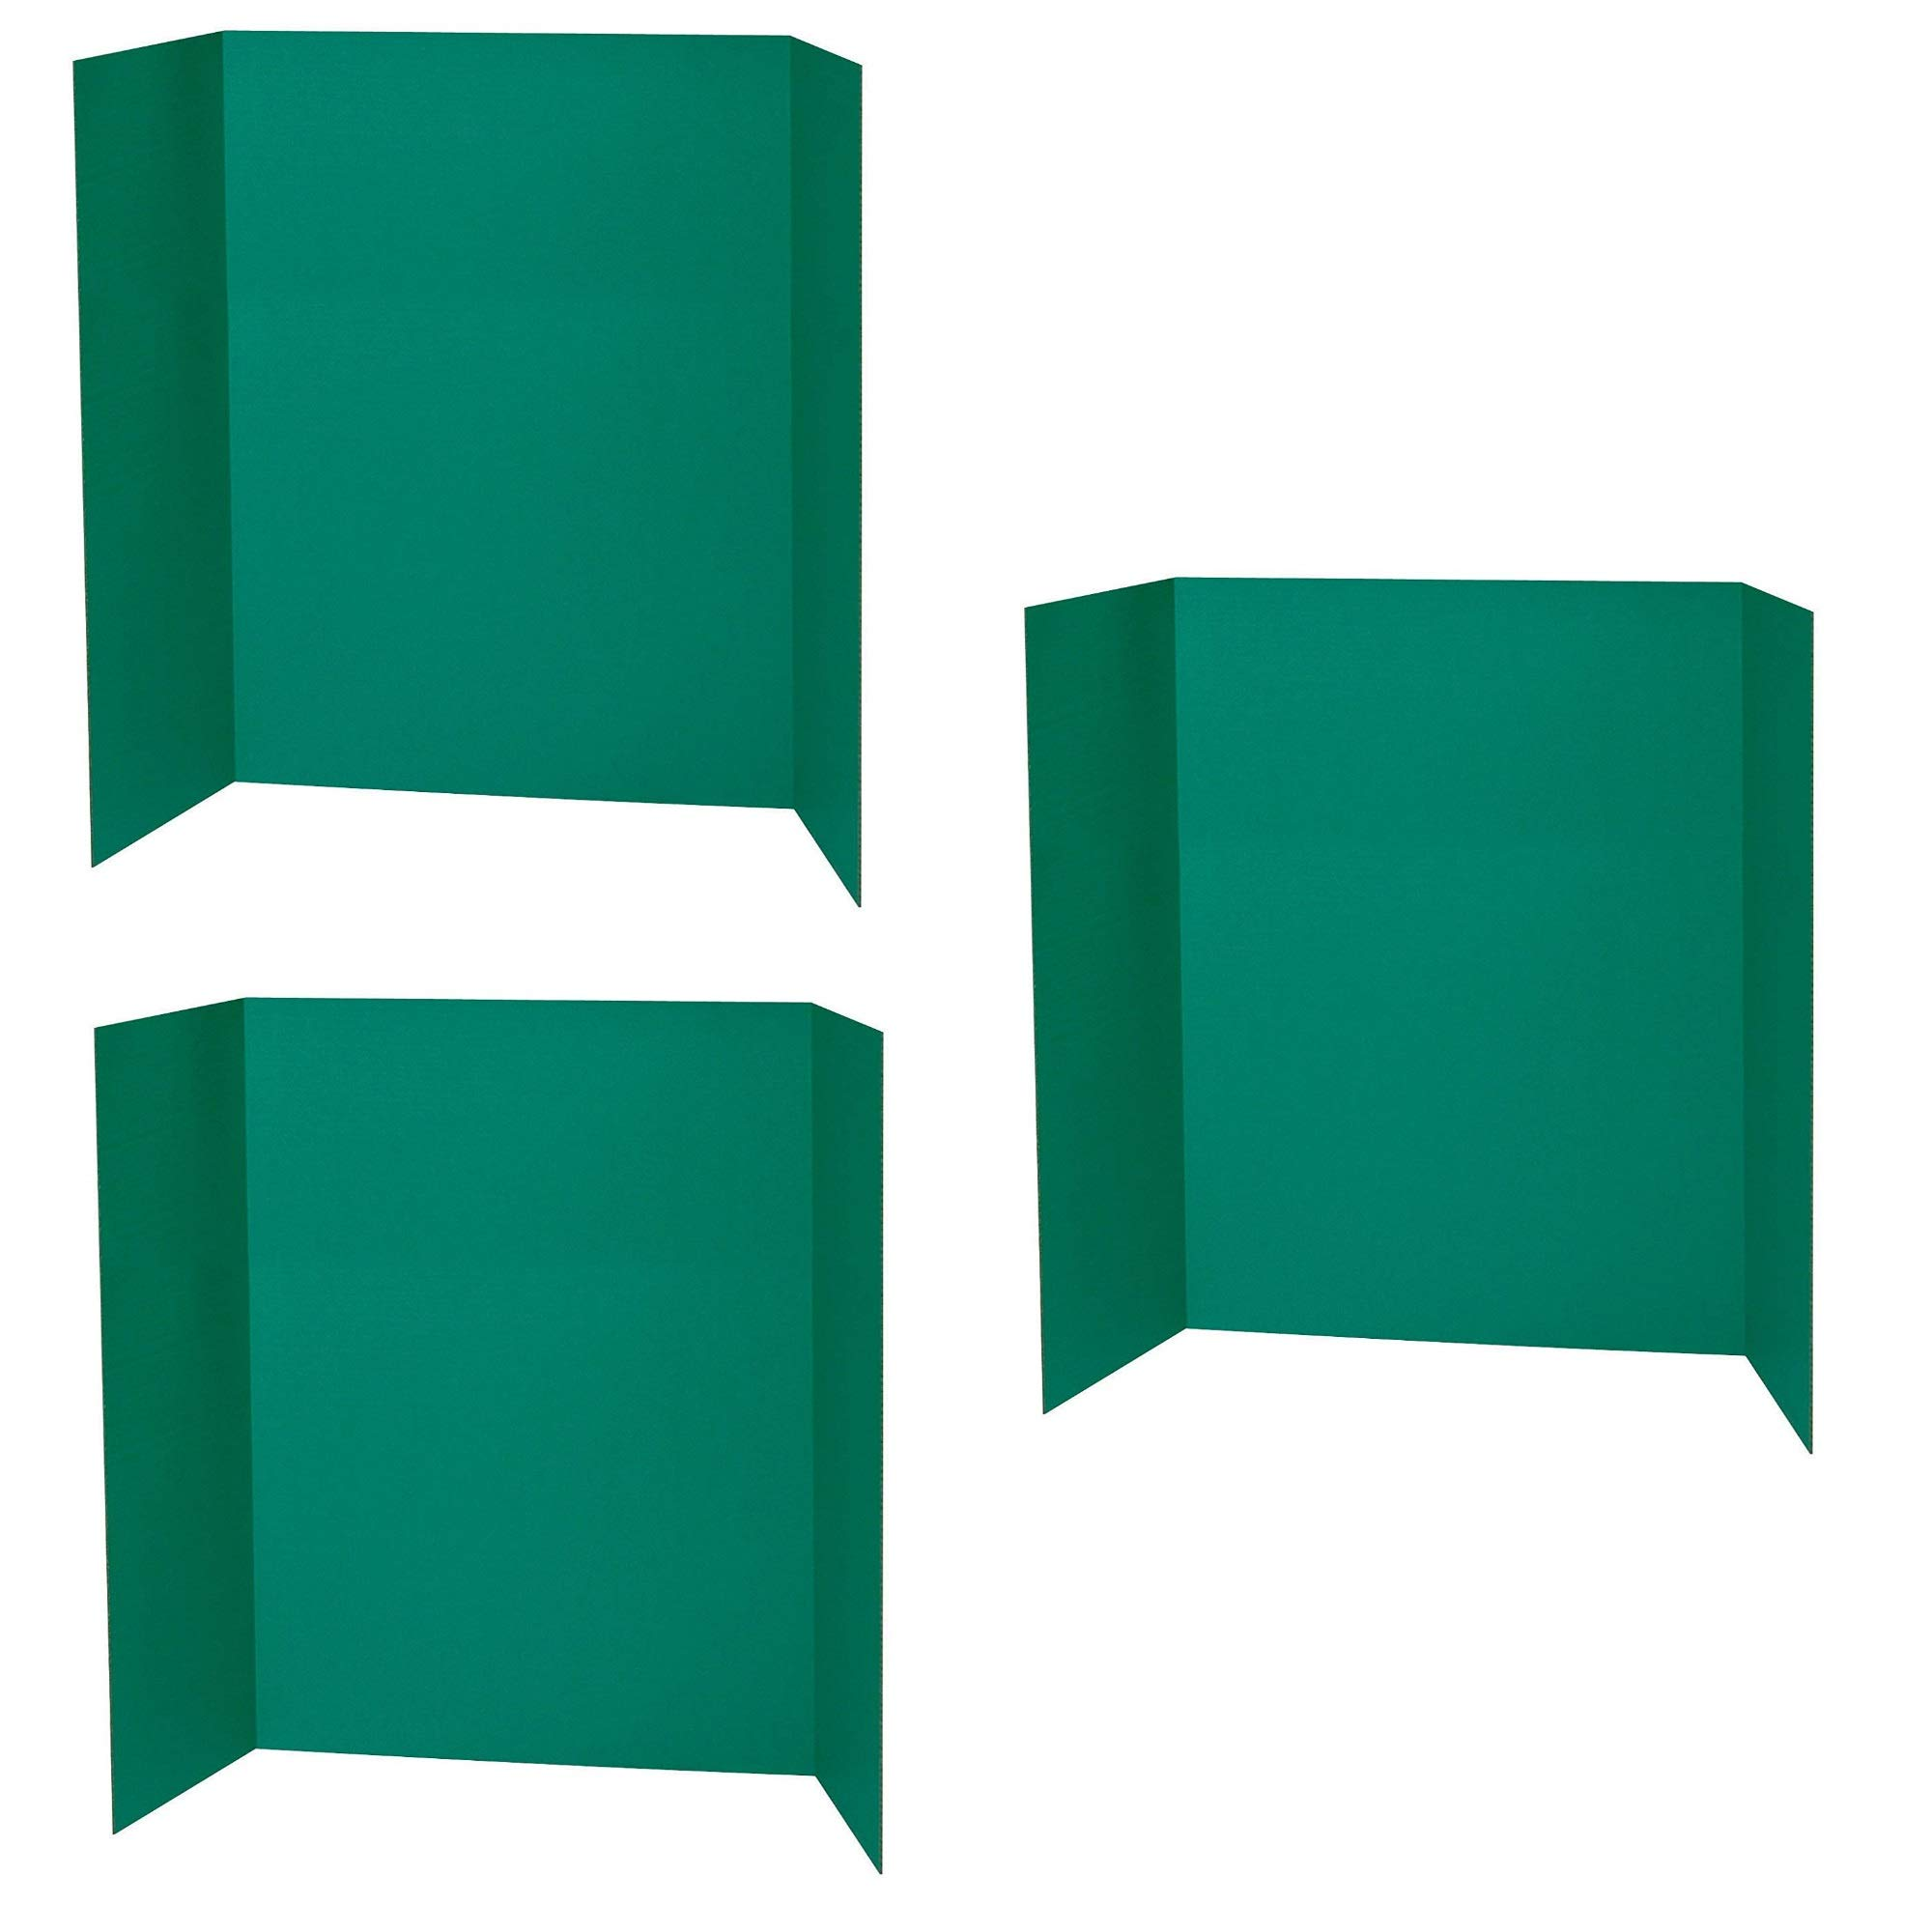 Spotlight 1 Ply Trifold Display Board, 48'' Width x 36'' Height, Green, 3 Pack by Spotlight